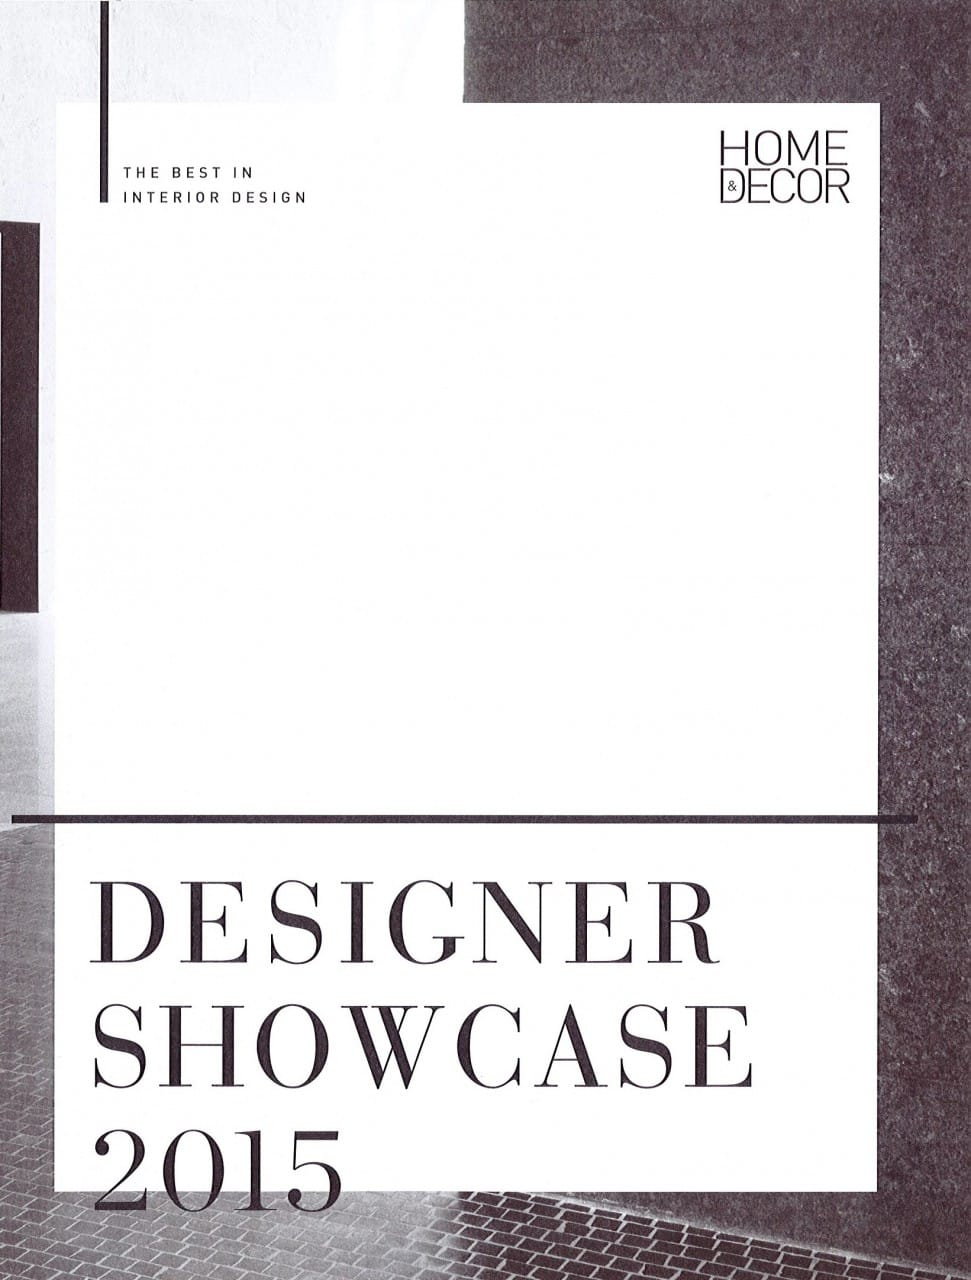 Home & Decor - Designer Showcase 2015